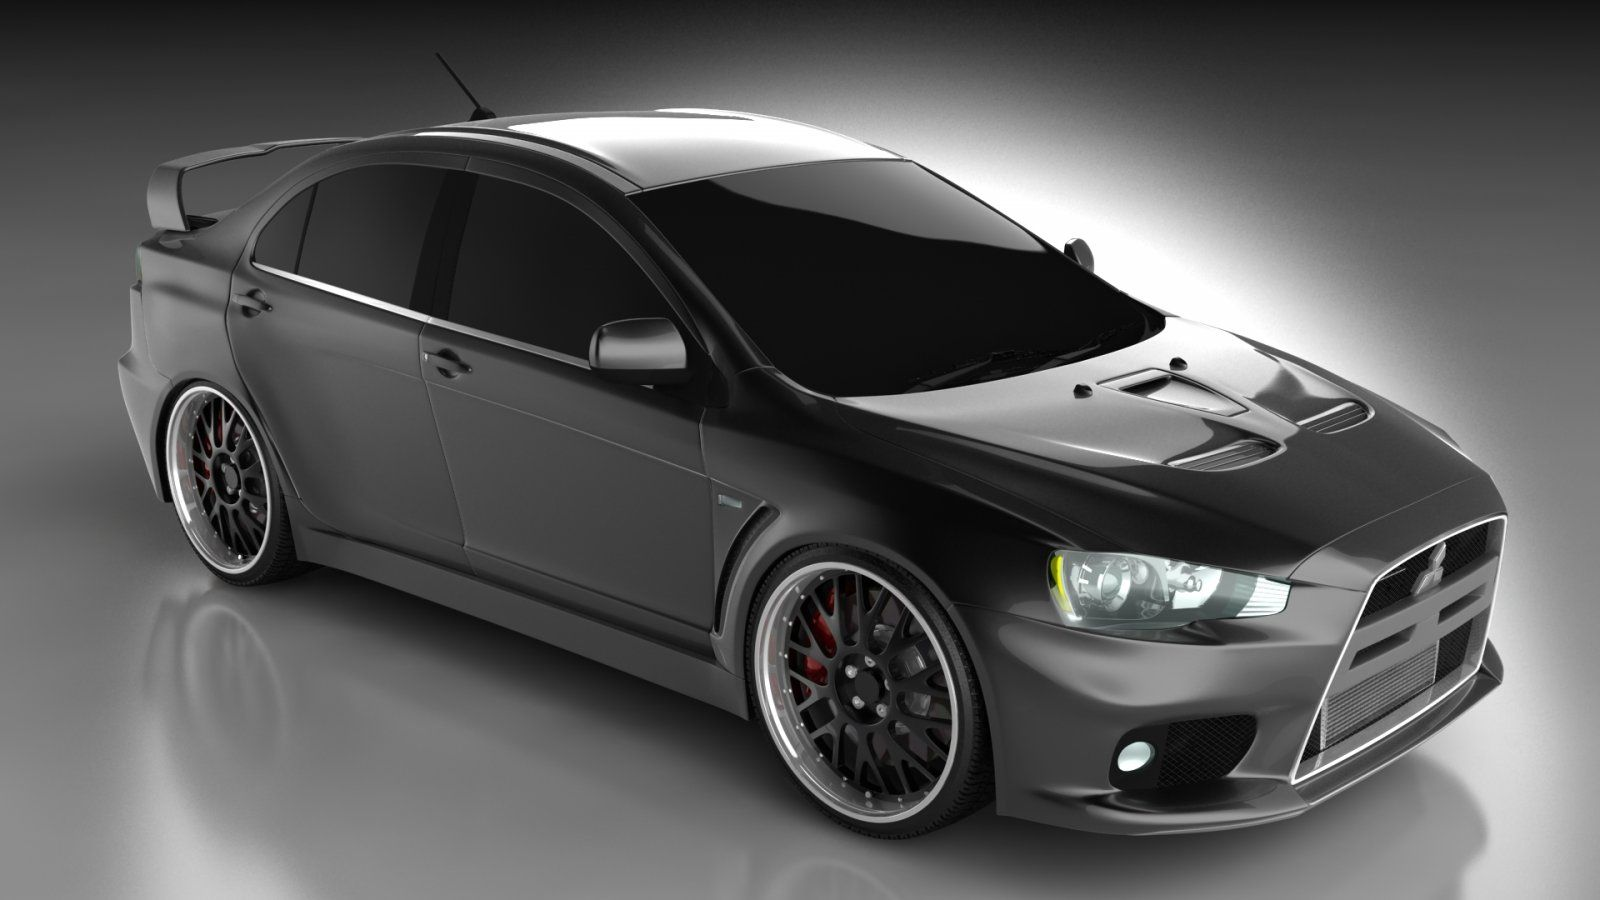 Black lancer evo 2014 wallpaper mitsubishi 2014 black evo